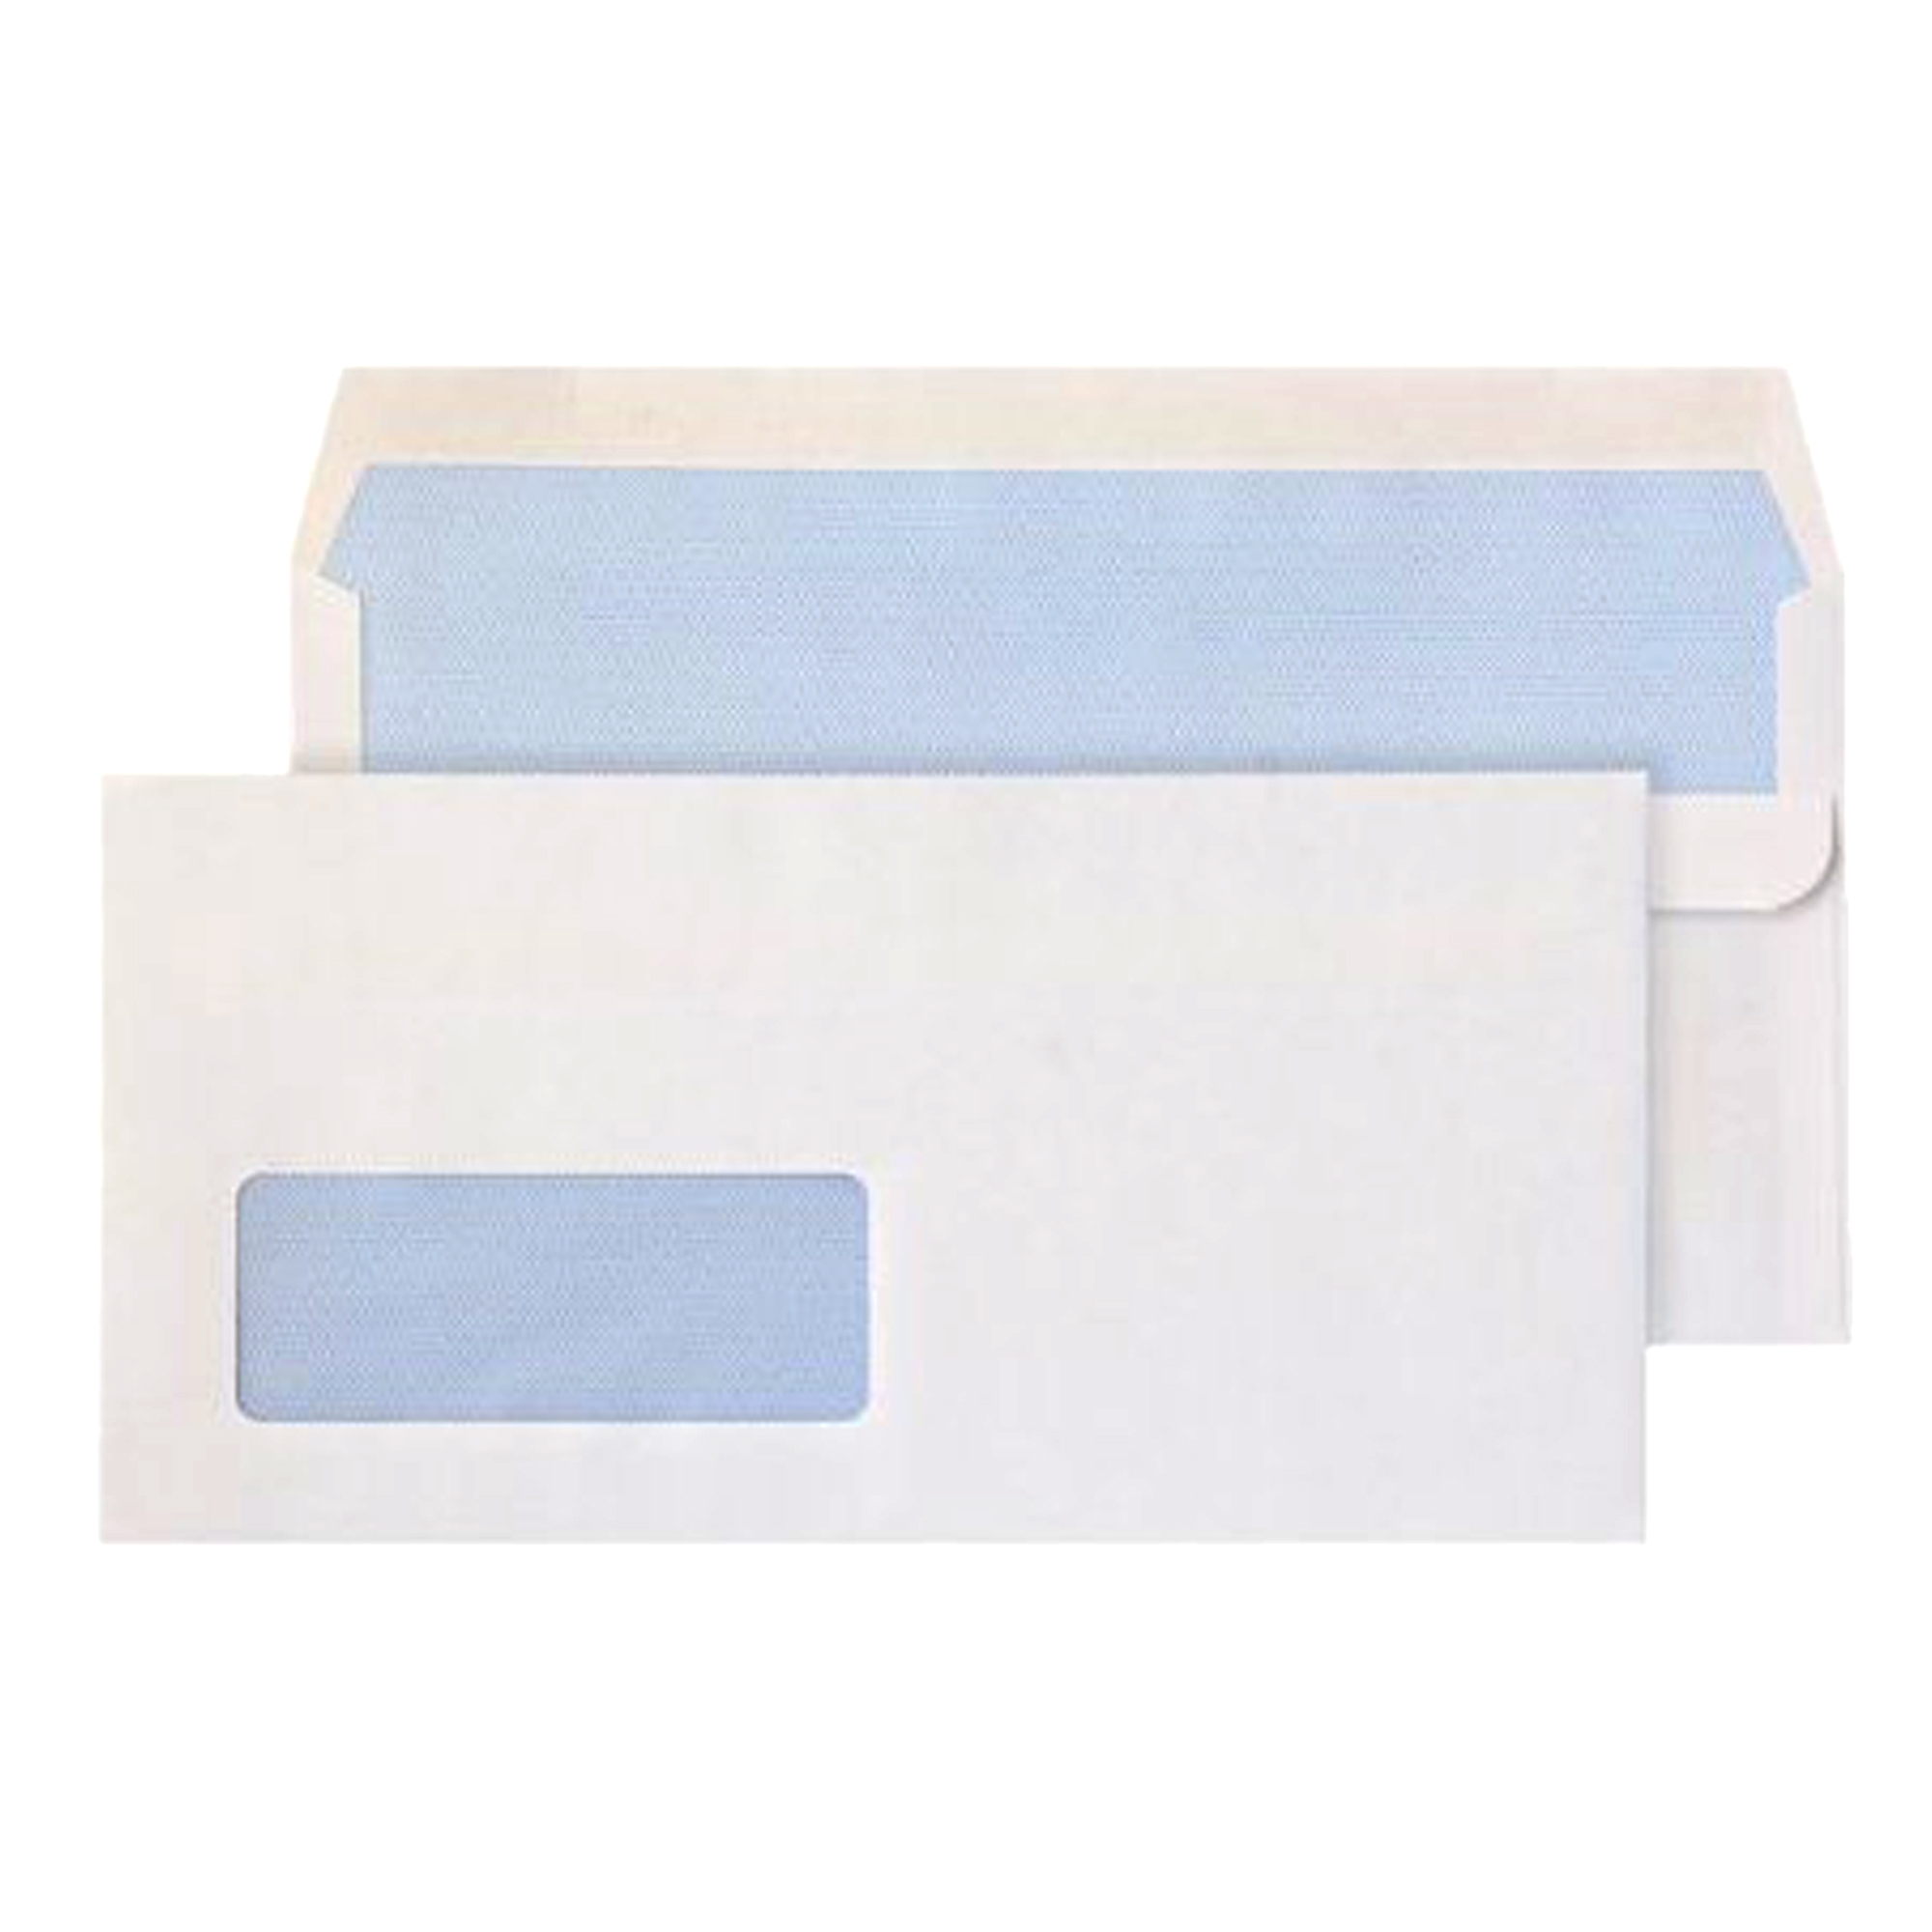 DL Window White Premium Business Envelopes